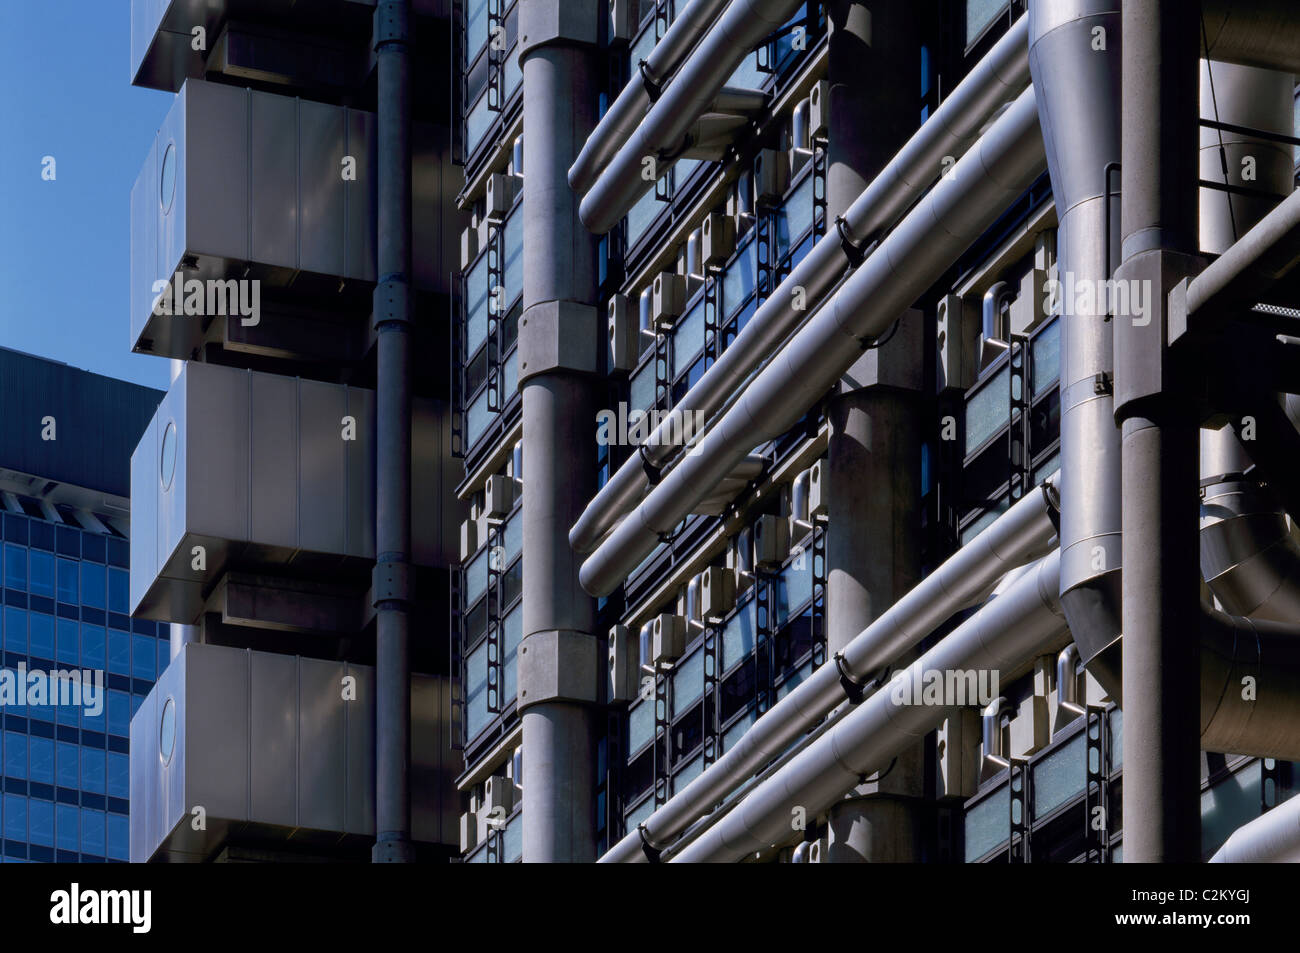 Lloyd's of London Building, Lime Street, City of London. - Stock Image